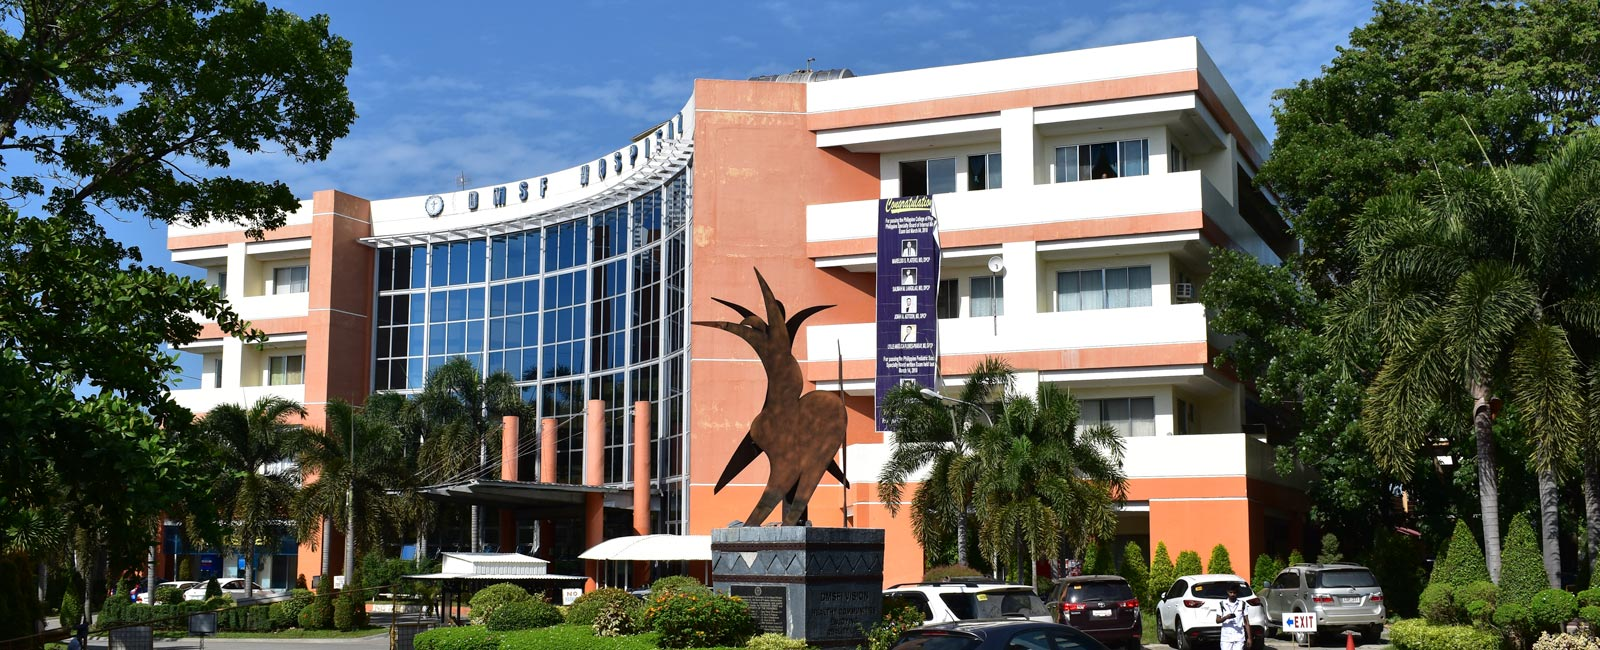 Davao Medical School Foundation Philippines is most loved premium college with world class infrastructure for Indian students to study MBBS abroad